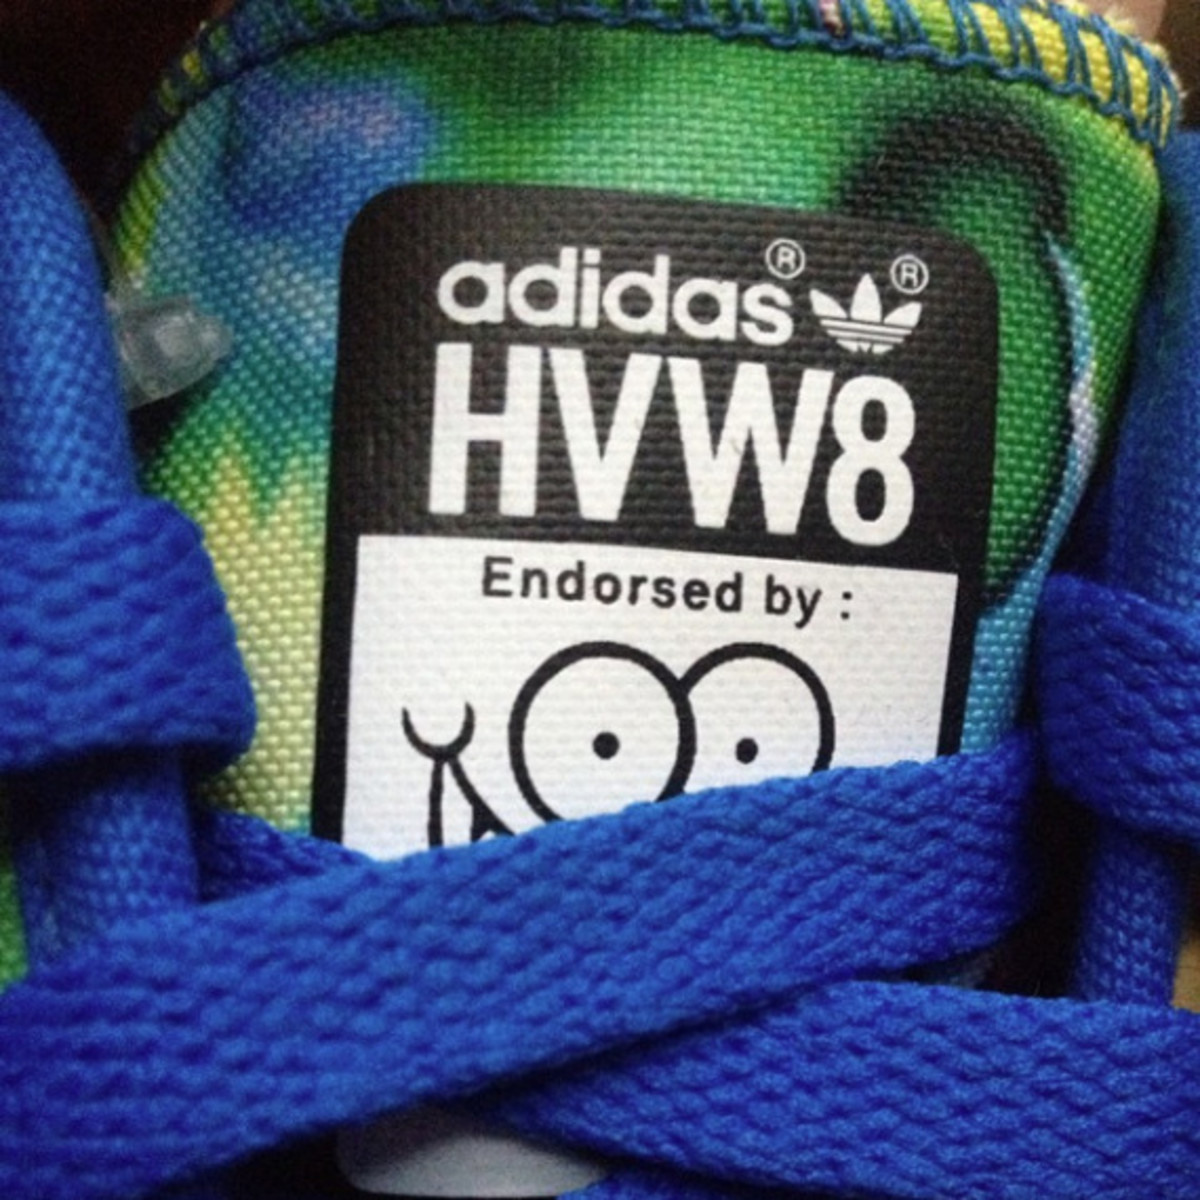 adidas Originals x HVW8 Gallery by Kevin Lyons & Jean André | Teaser - 0